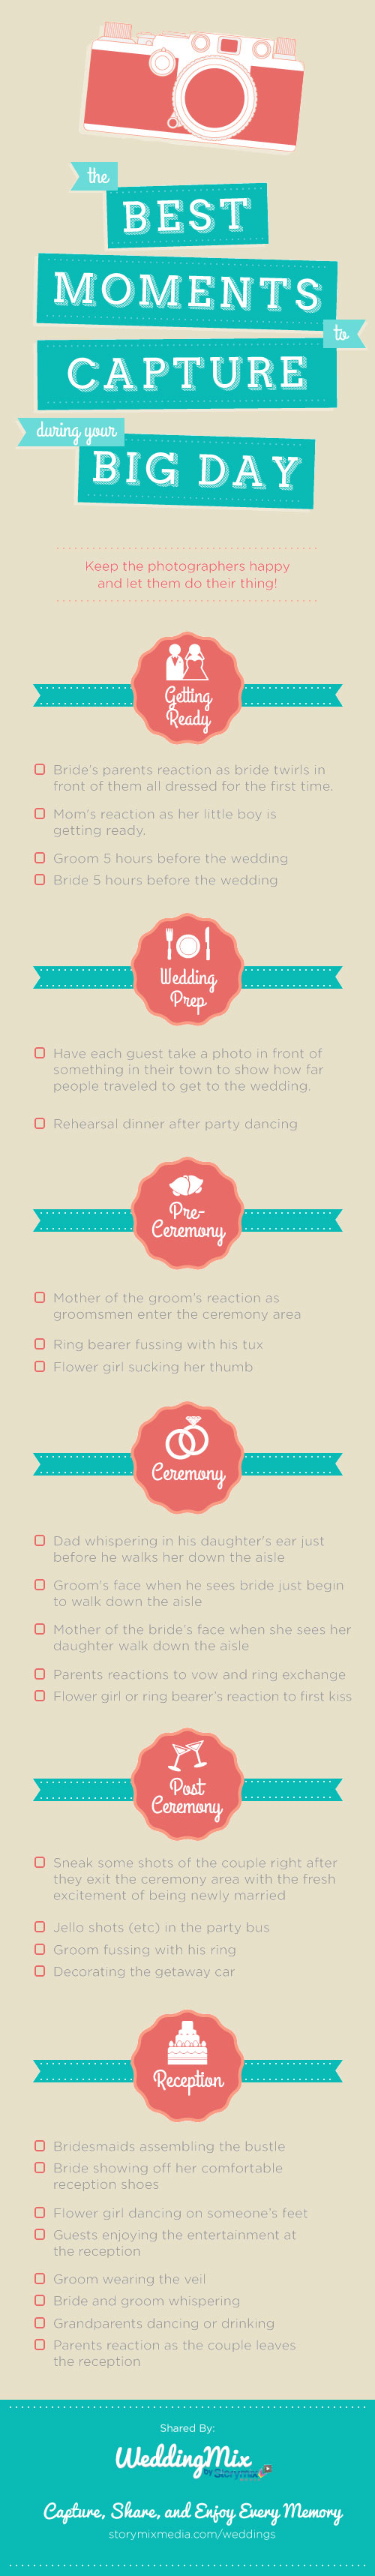 best moments wedding photo video checklist infographic